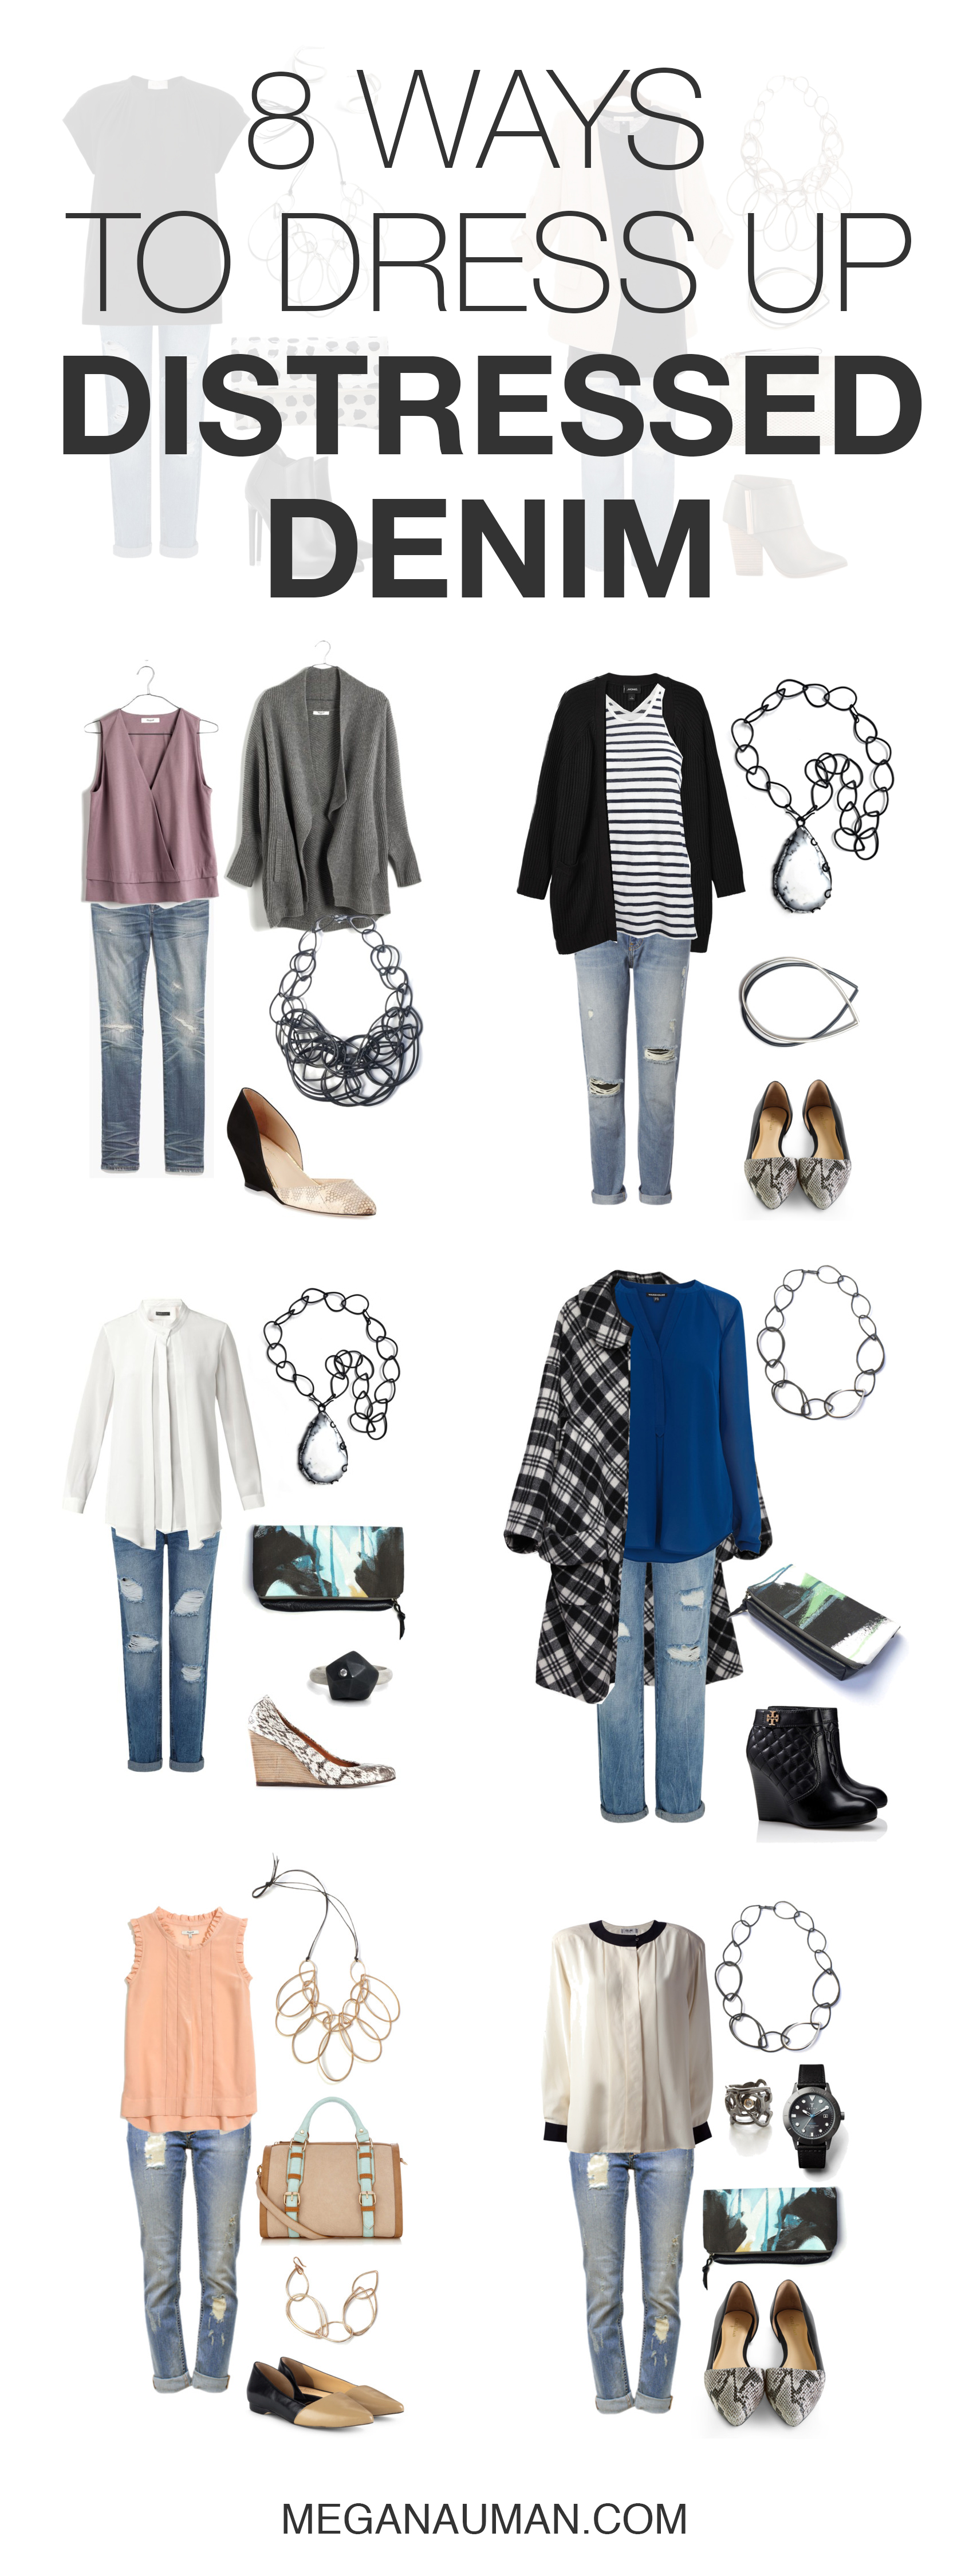 how to dress up distressed denim jeans: 8 style ideas // click through for outfit details